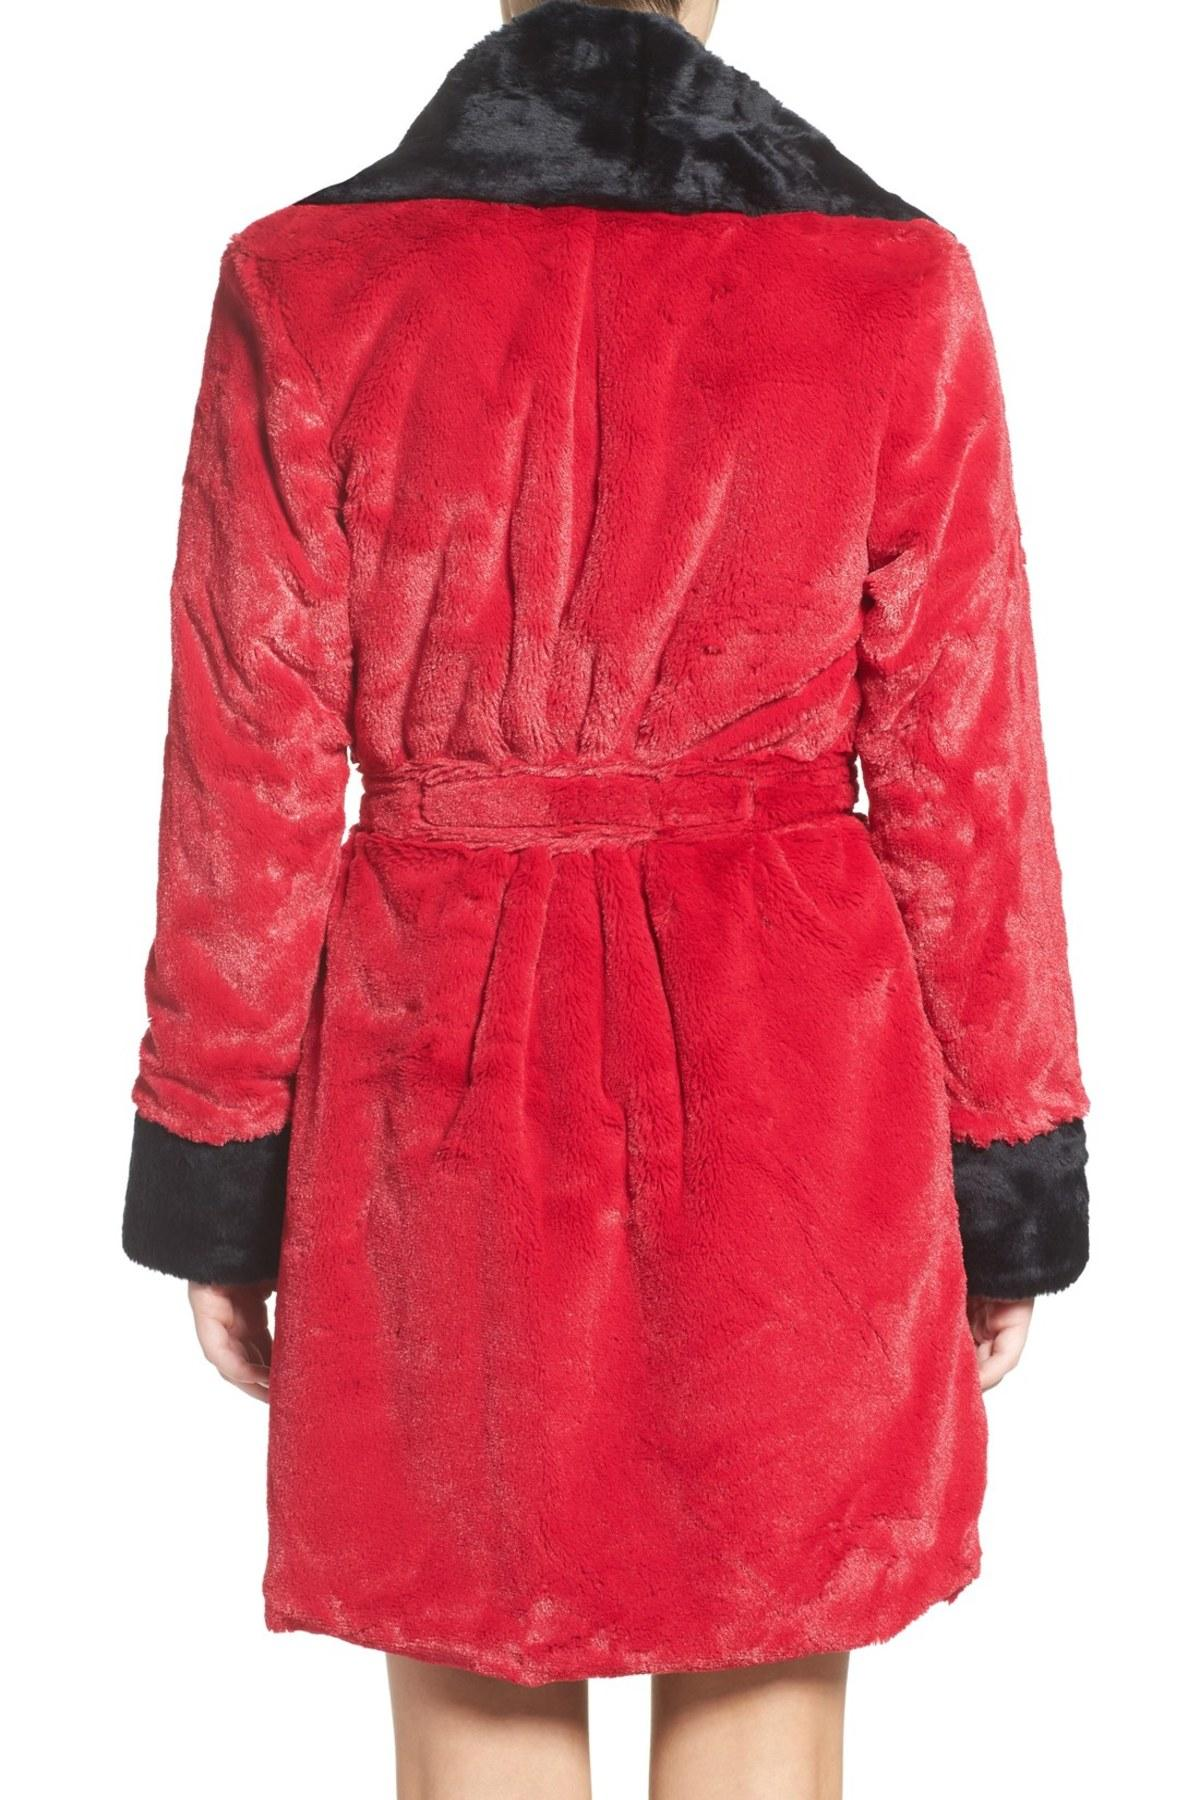 Betsey johnson glamour short robe in red lyst for Robes de mariage de betsey johnson